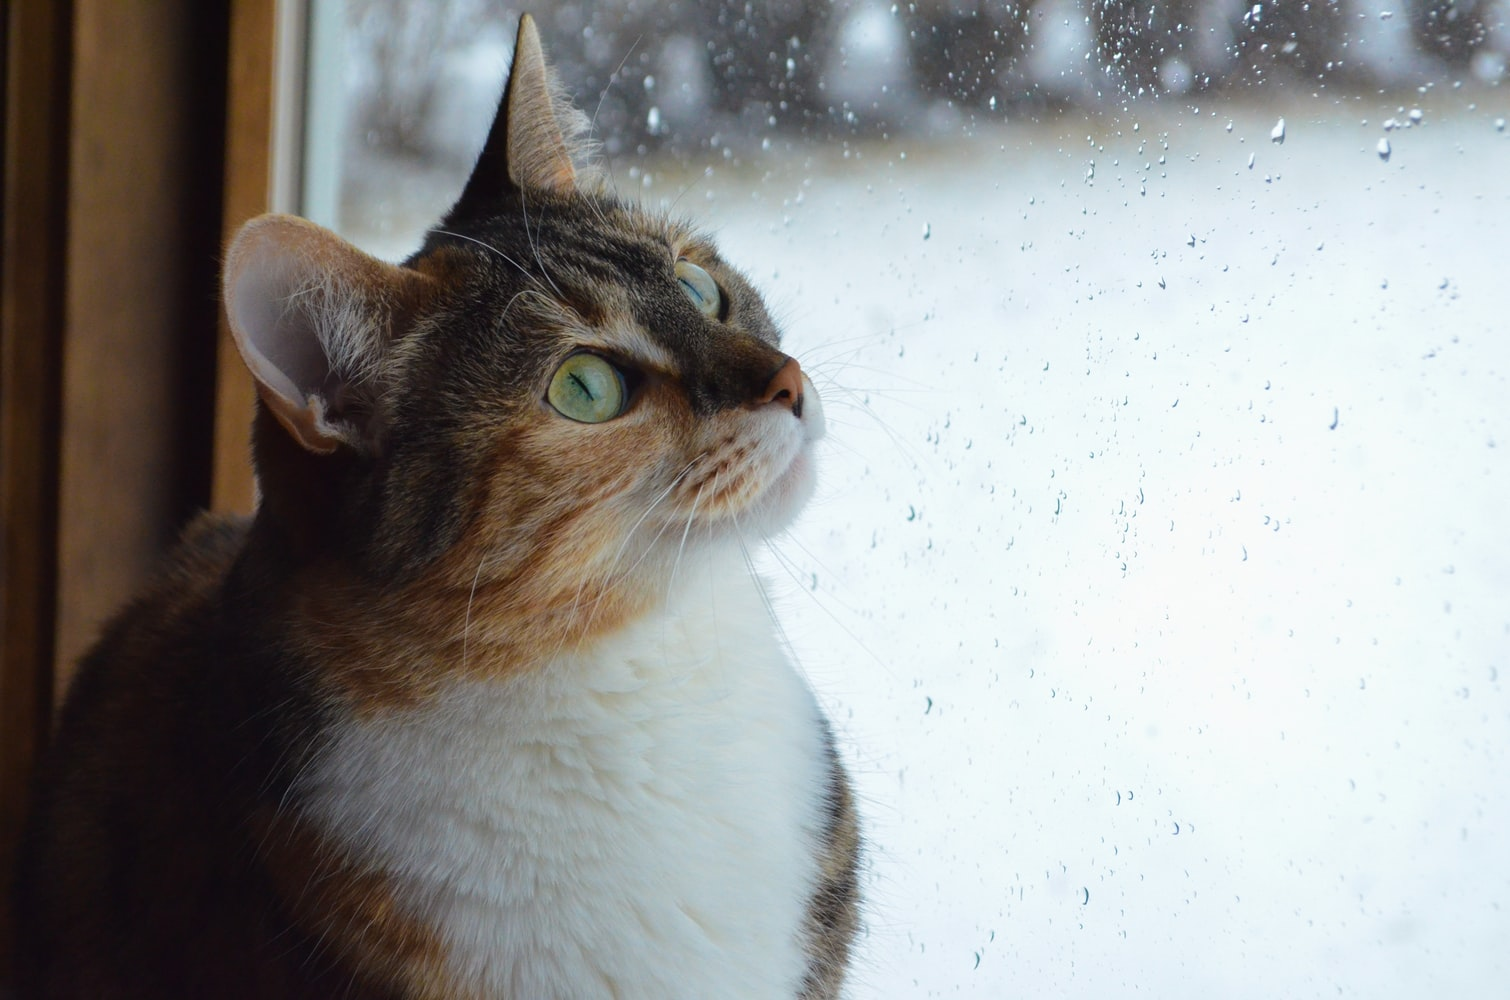 calico cat with green eyes look at rain